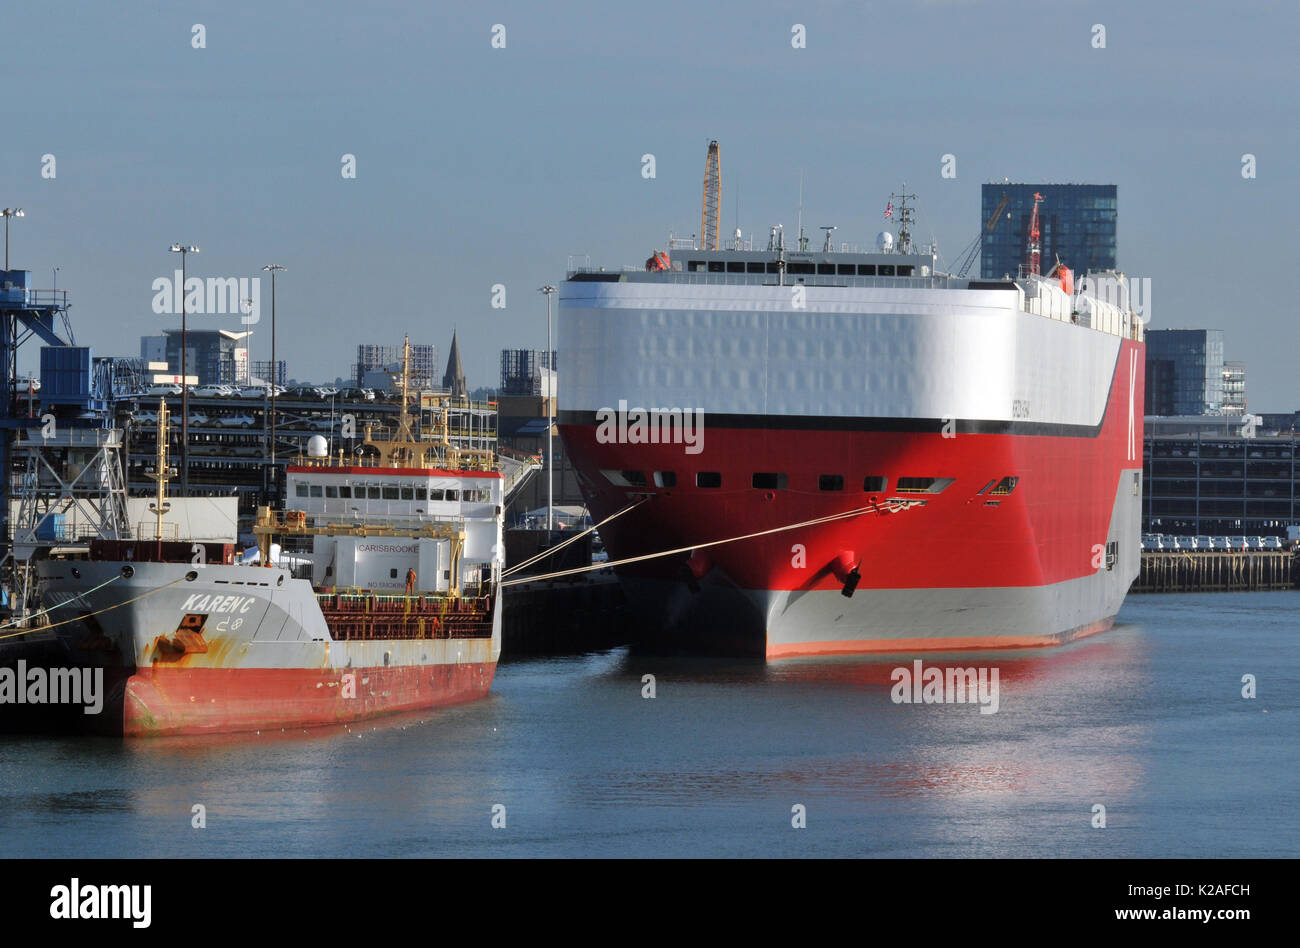 Large car carrying ships at southampton docks carries of vehicles loading and unloading ports exports and imports. - Stock Image